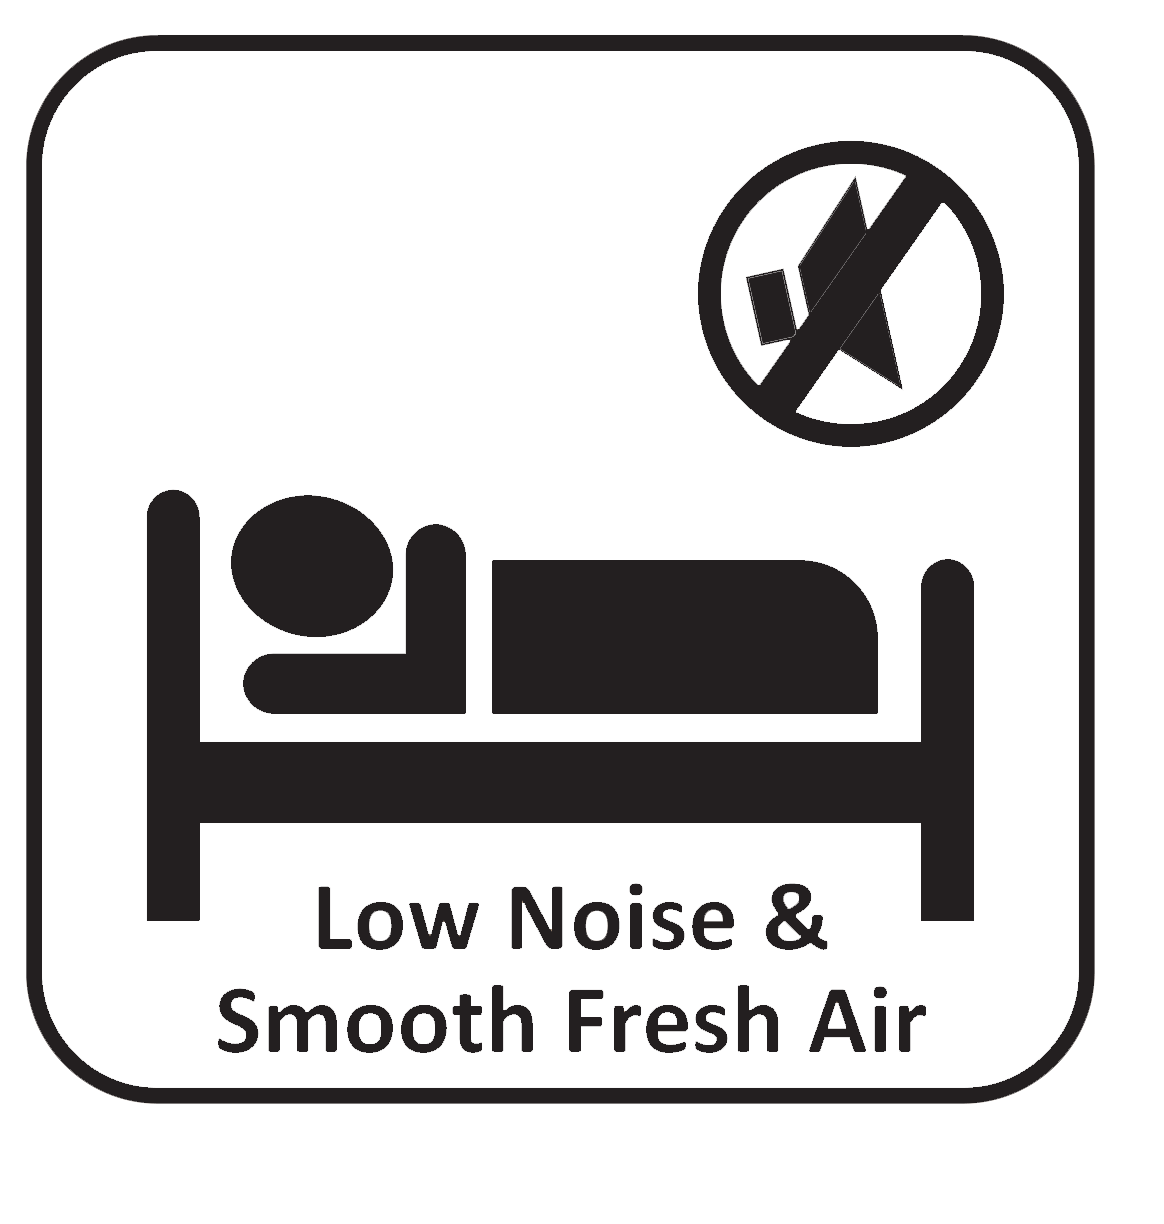 Low noise icon